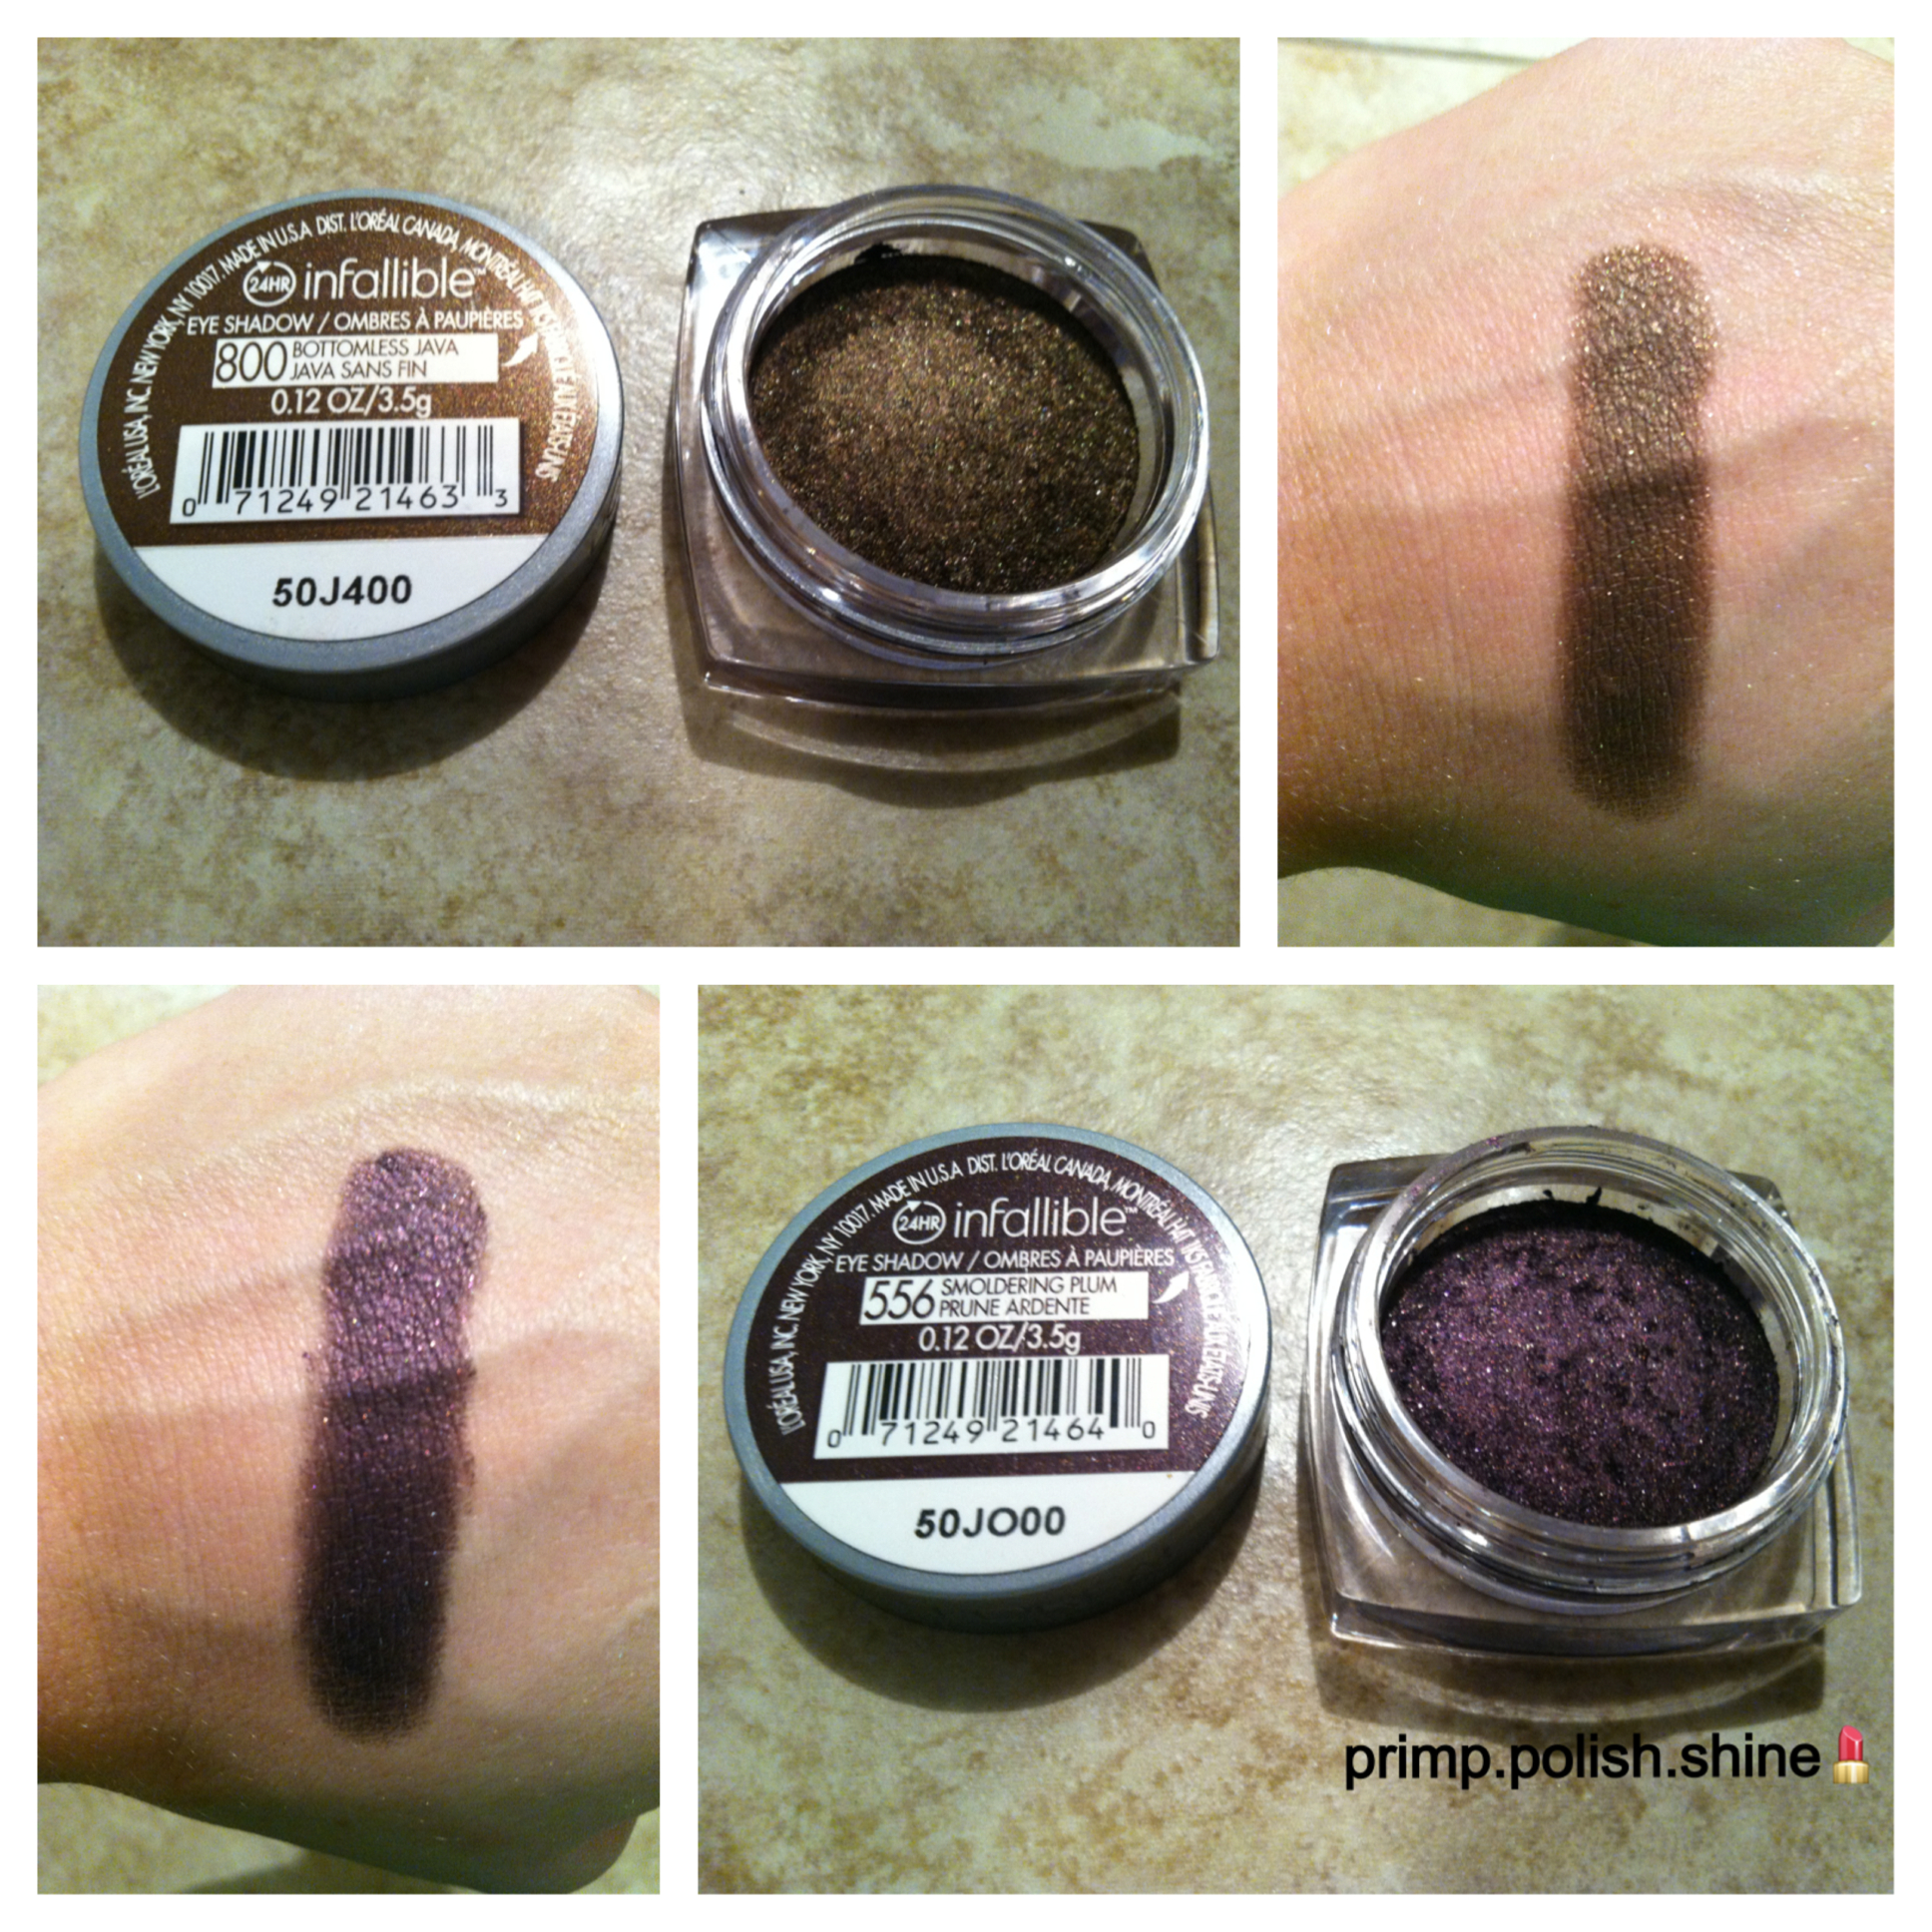 Favorite Drugstore Eyeshadows Part 1 Loreal Infallible 24 Hour